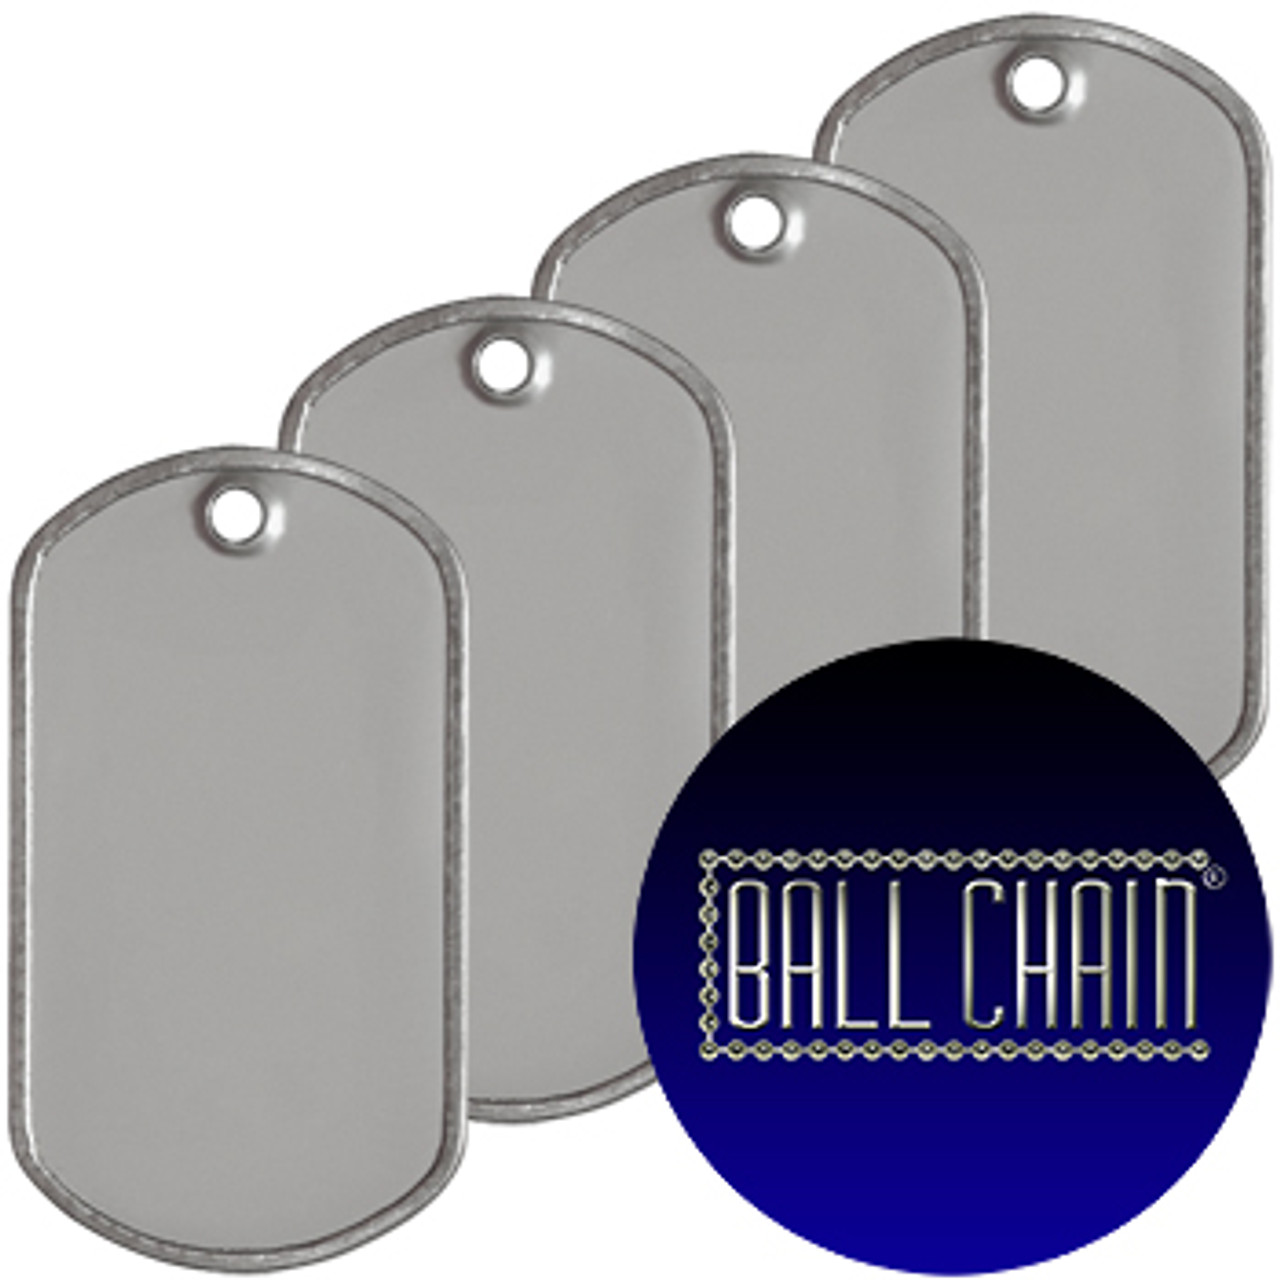 Blank Dog Tags - Rolled Edge Stainless Steel - Matte Finish (grey). Military style.